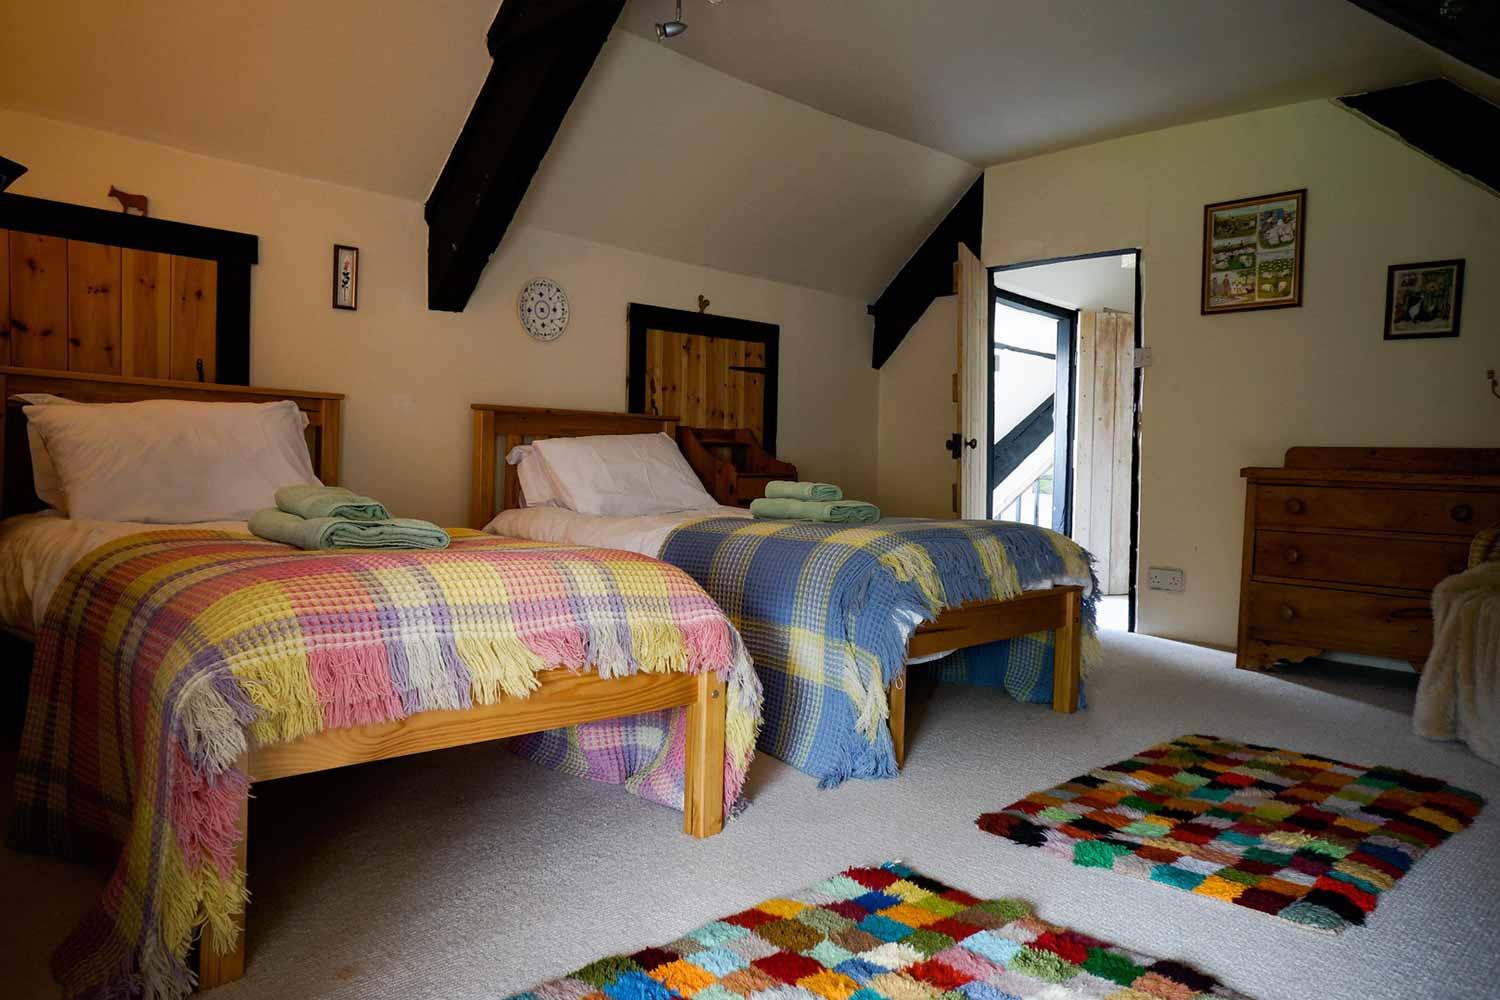 Gilestone-Farmhouse-holiday-accommodation-in-Talybont-on-Usk-near-Brecon-in-Wales.jpg